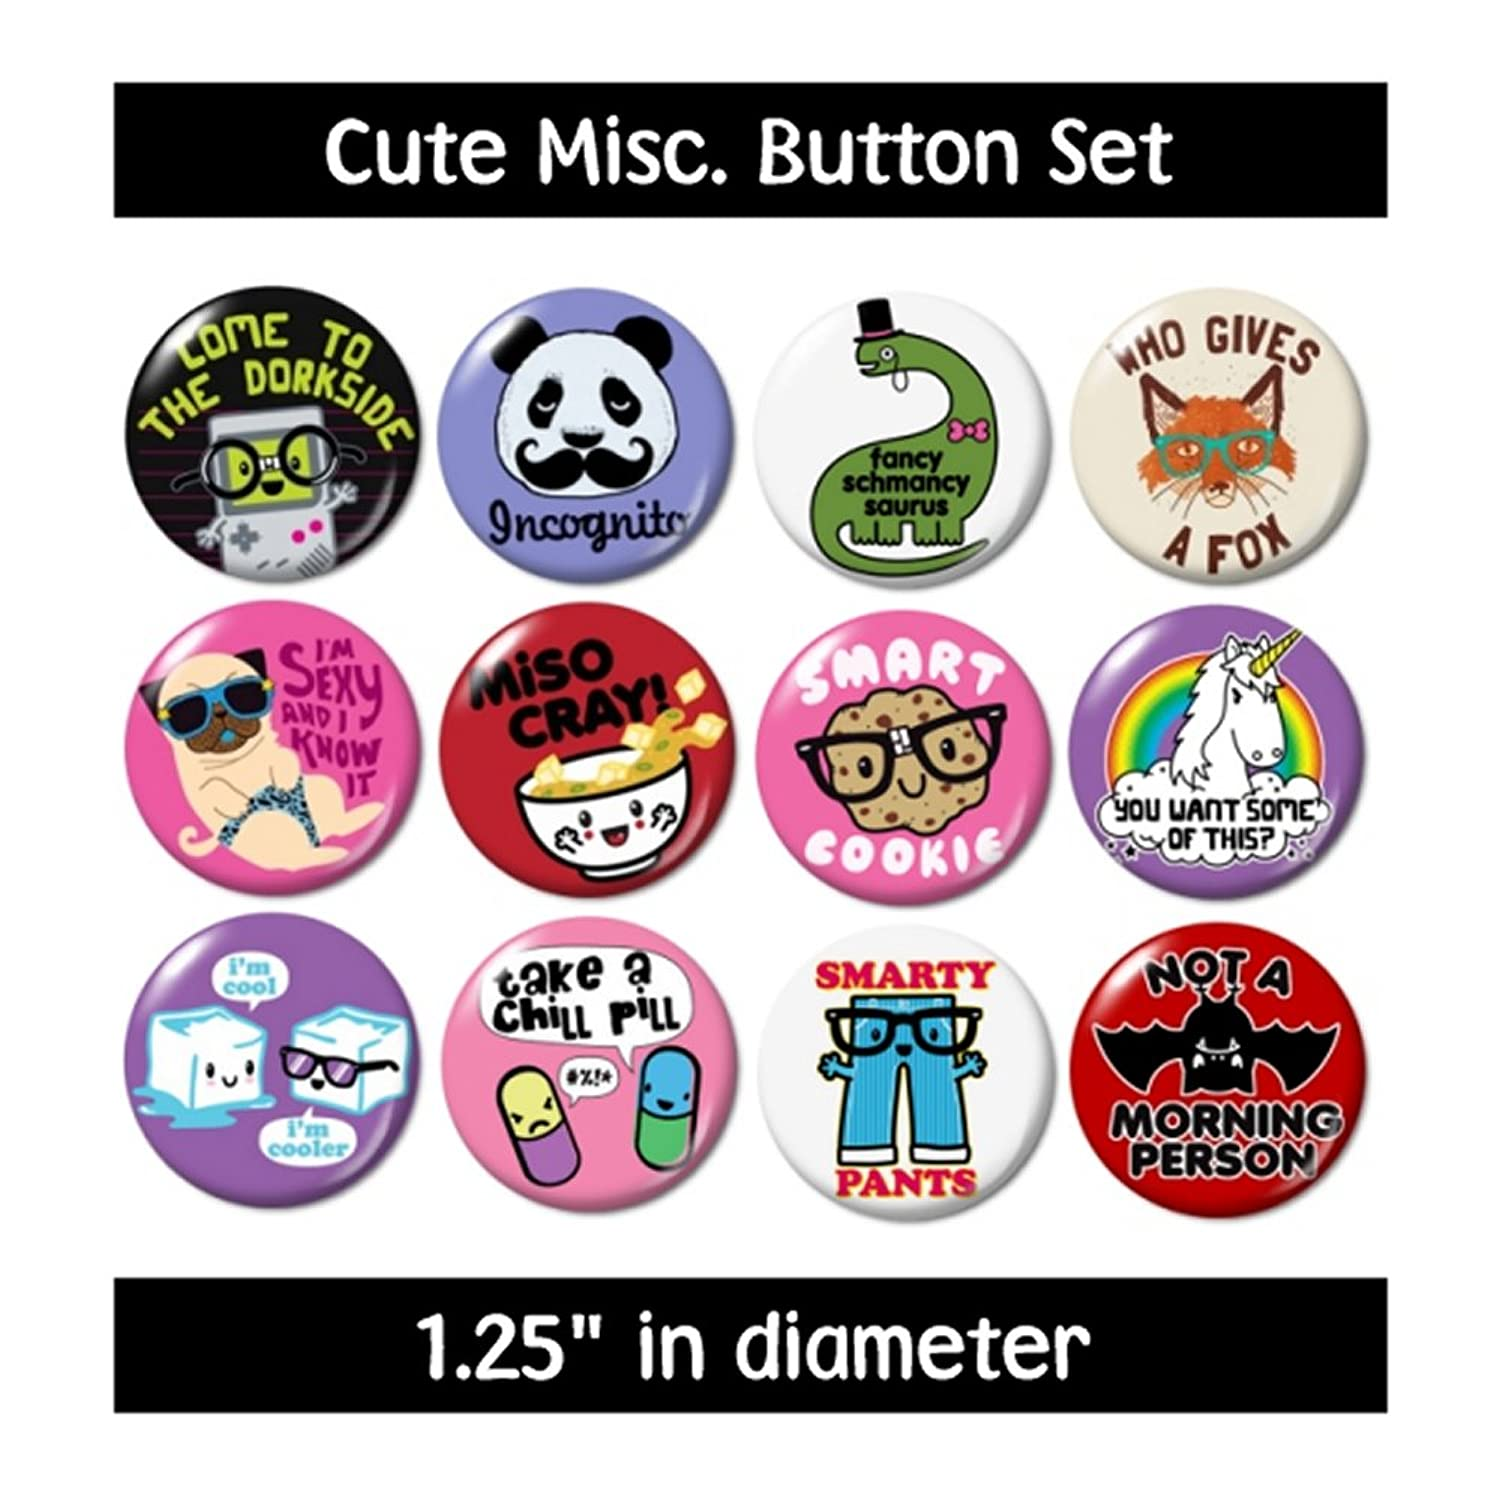 Amazon.com: CUTE MISC. BUTTONS pins badges dork smarty pants new: Clothing